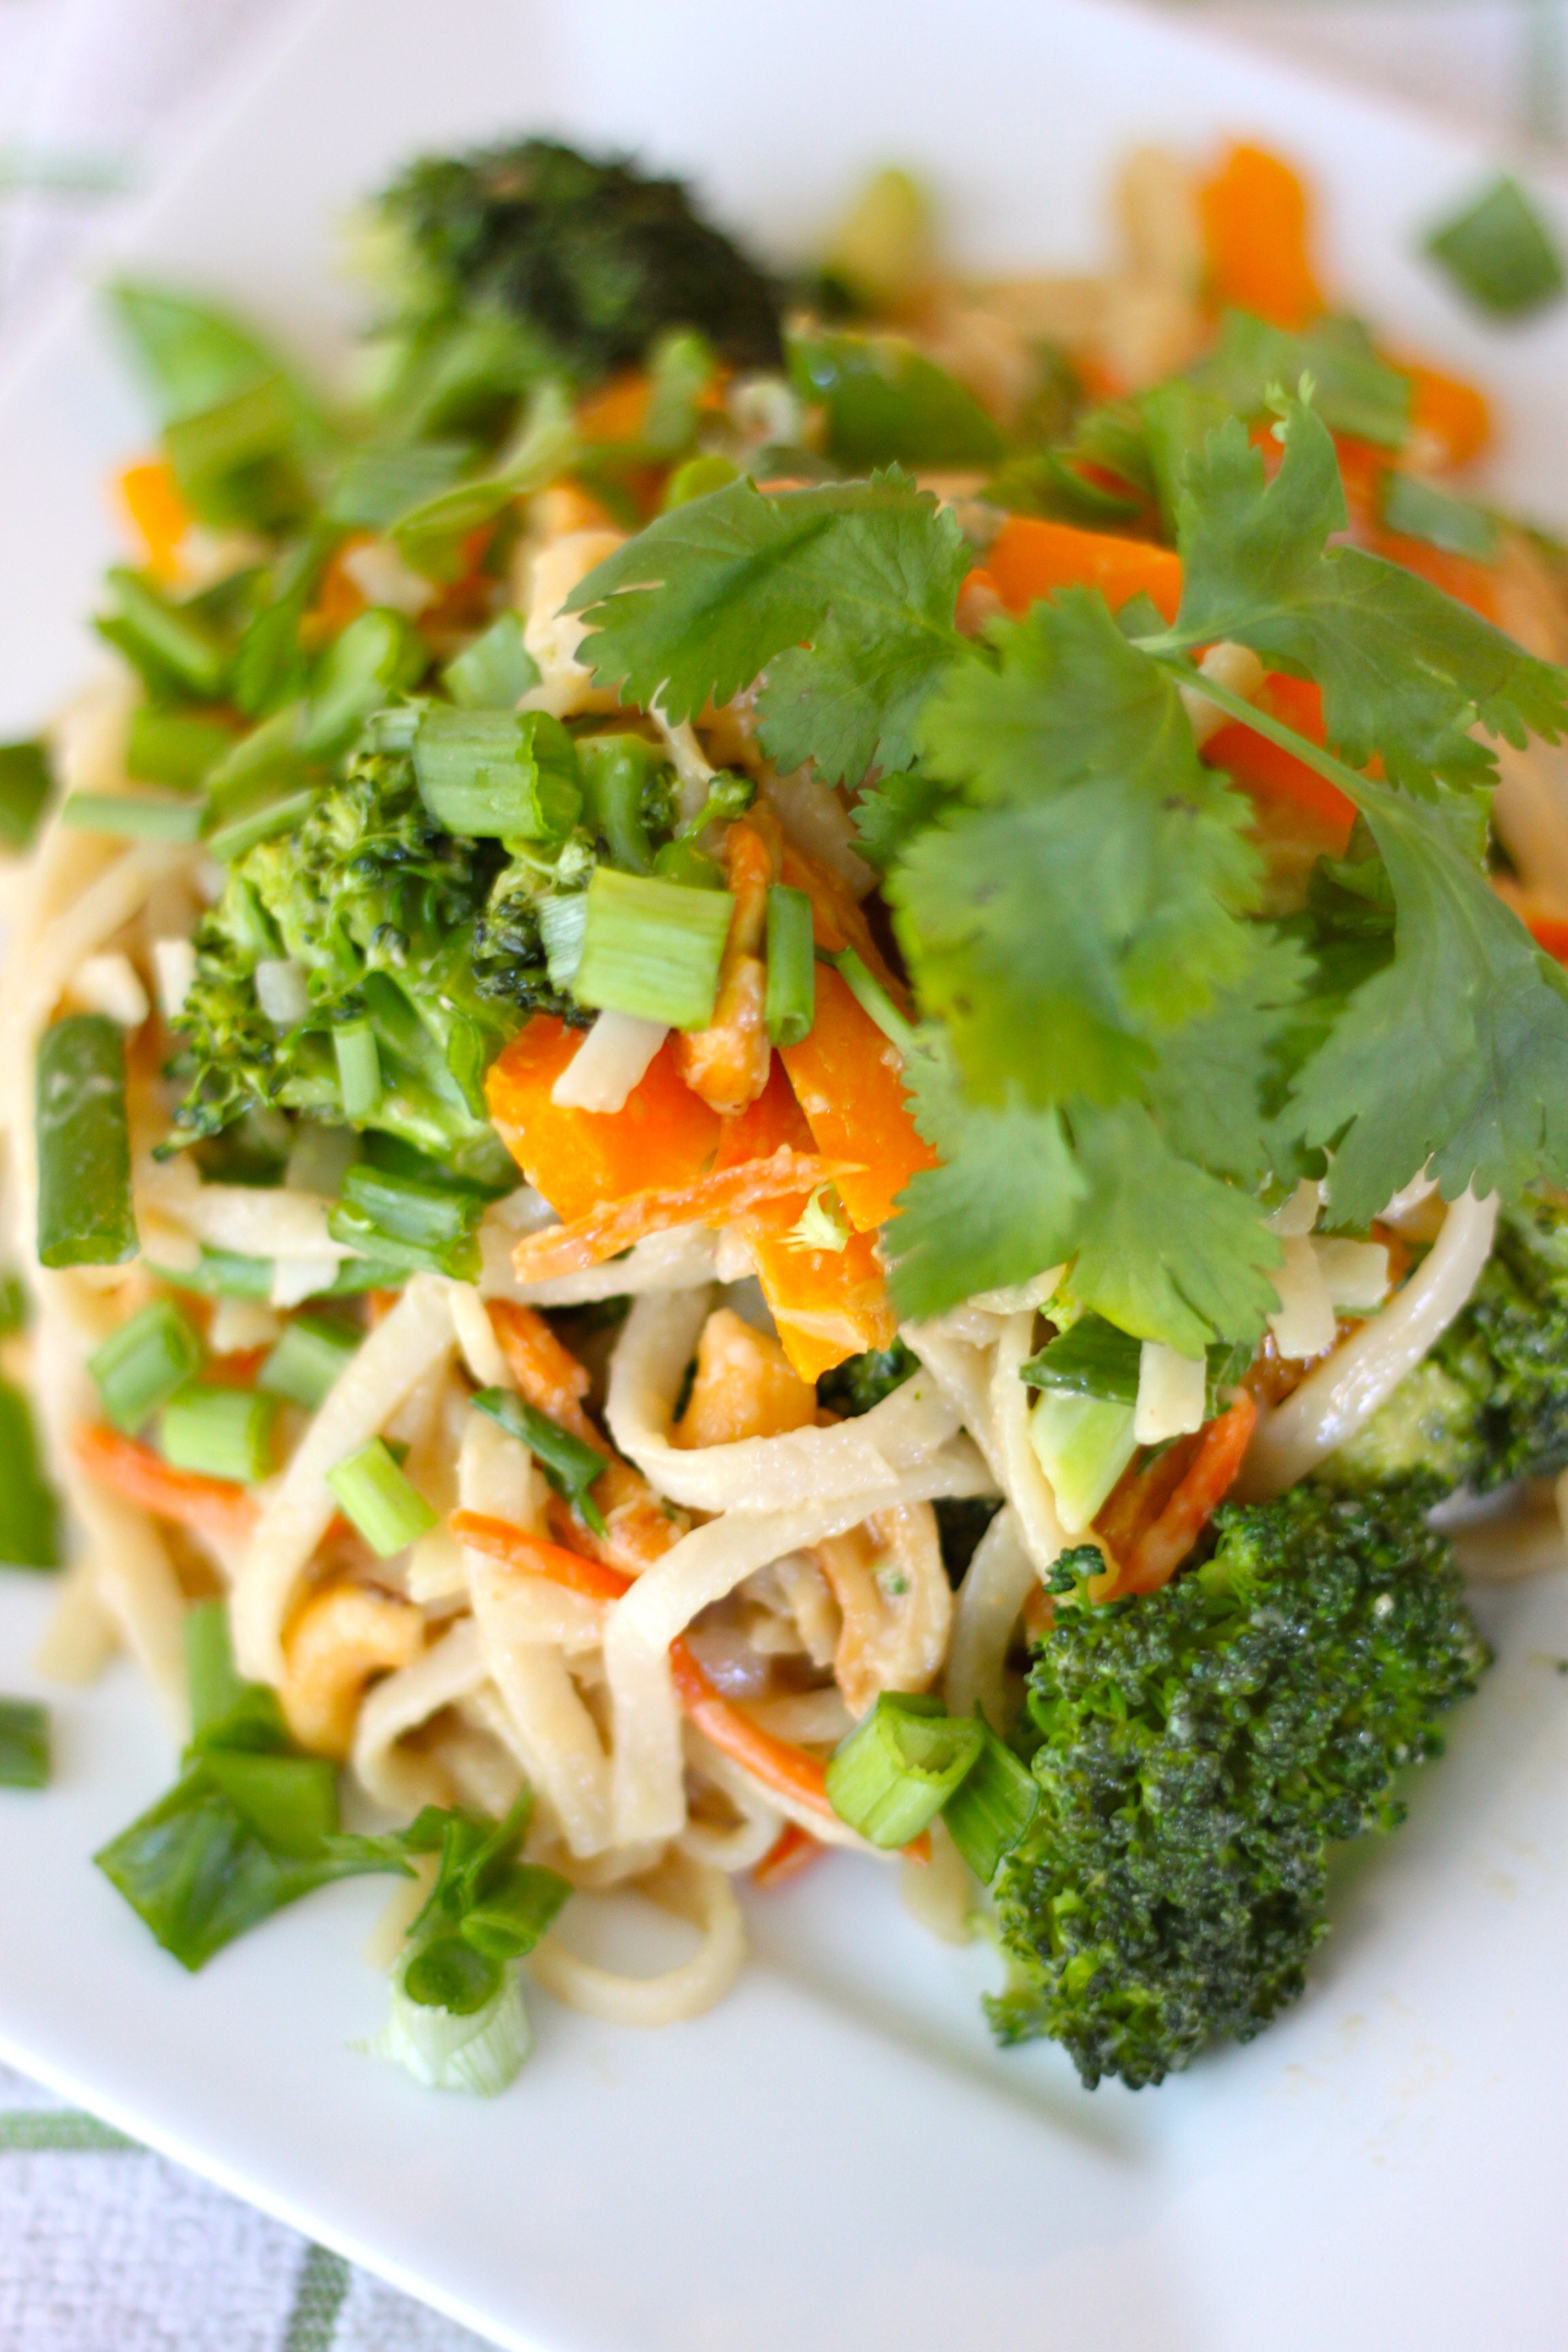 Asian Noodles with Peanut Sauce from The Diva Dish